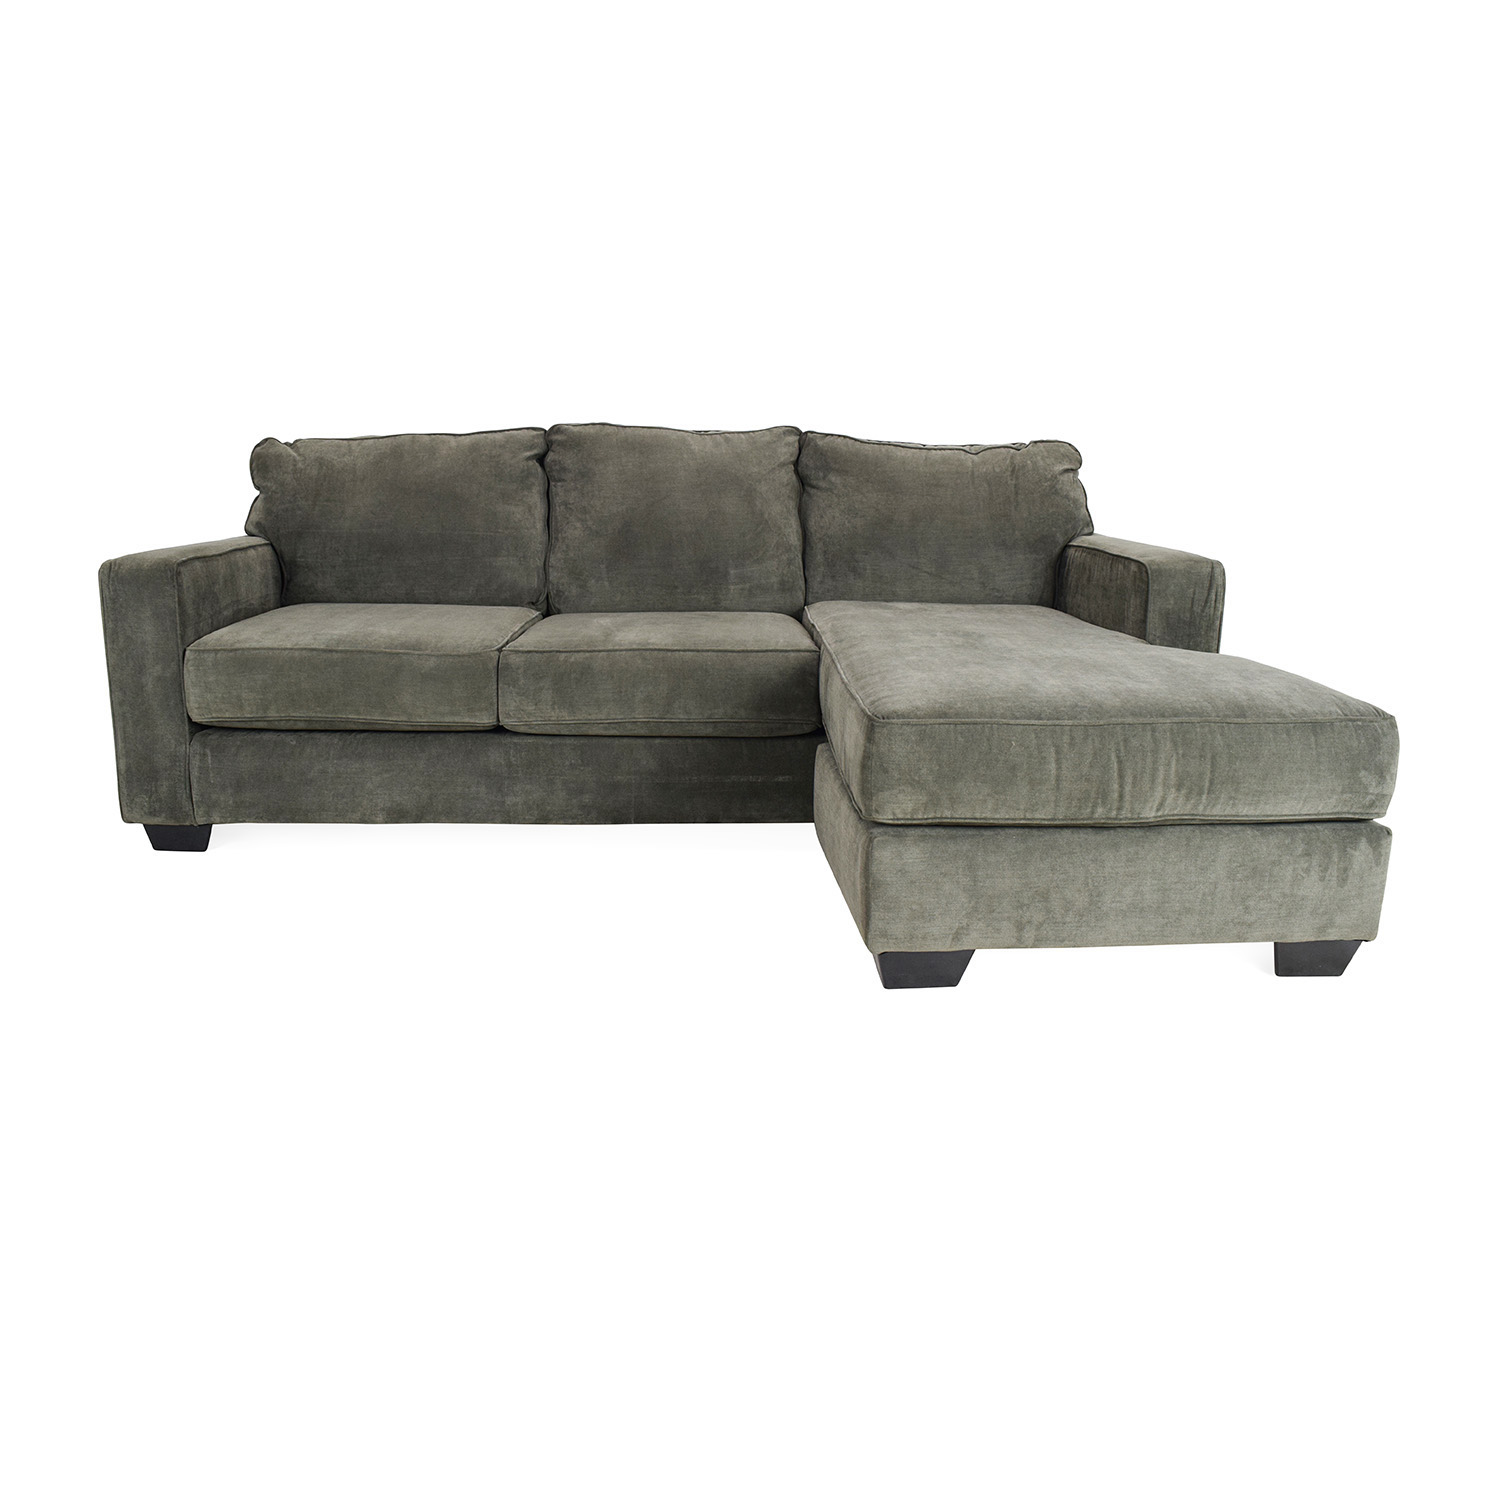 jennifer convertibles leather reclining sofa blue denim slipcover sofas and sectionals astonishing sectional